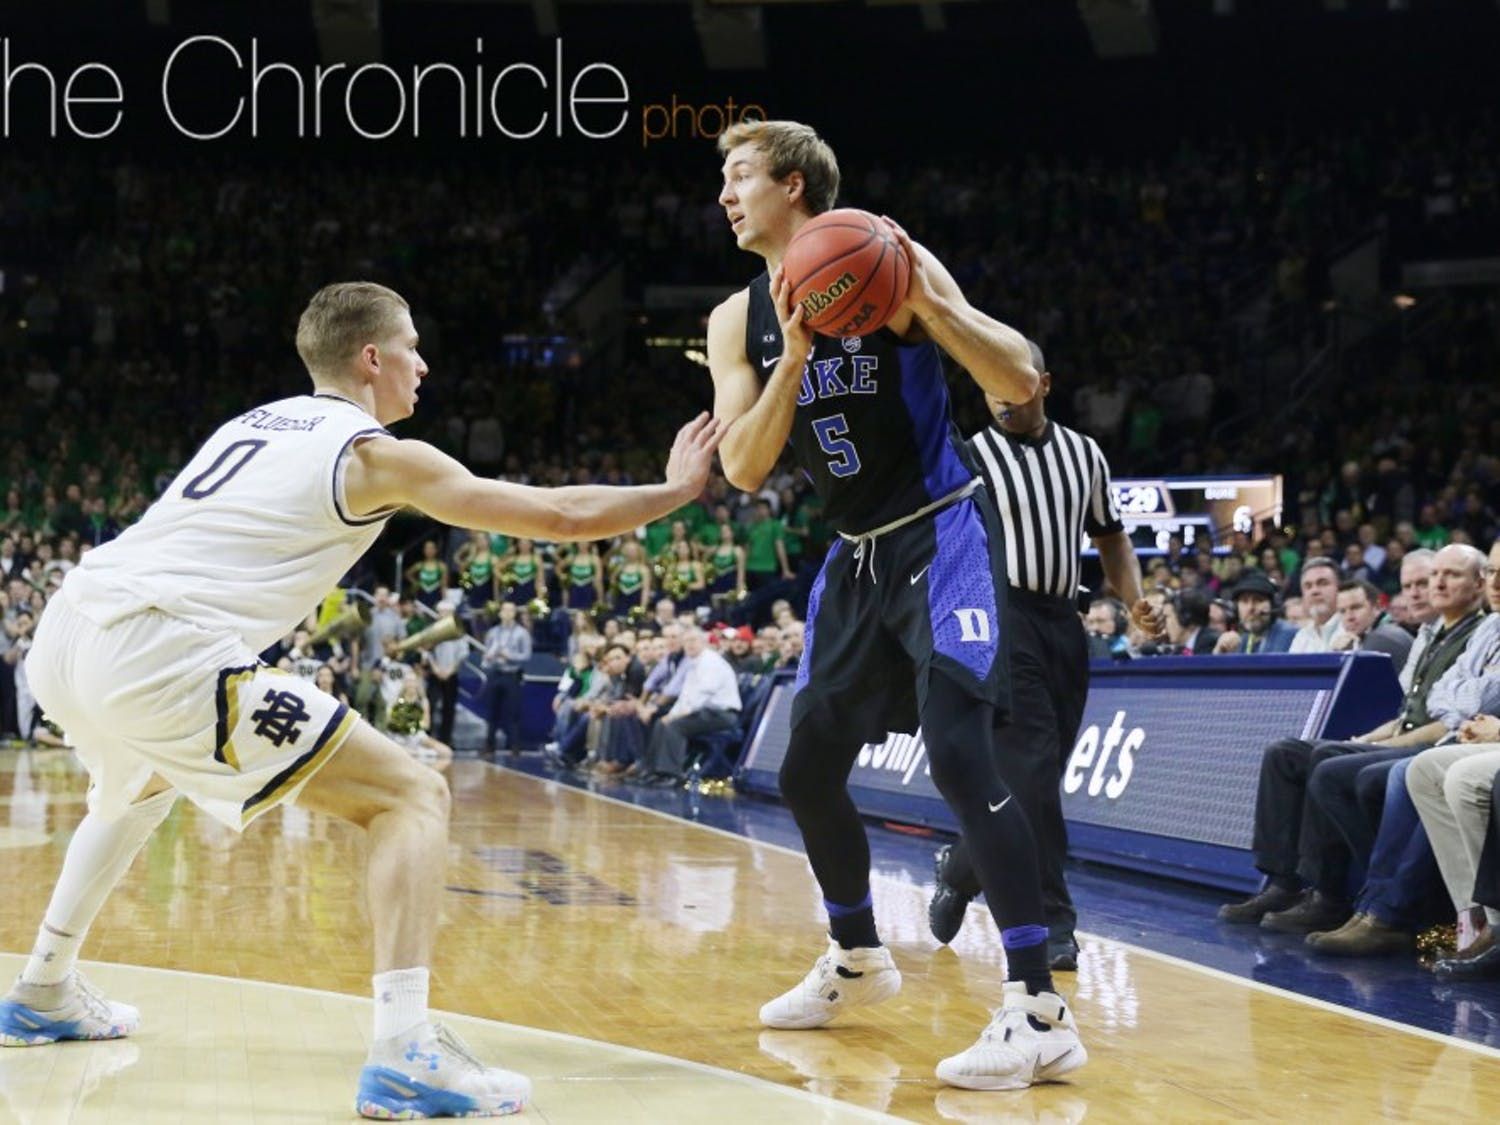 Kennard has become more comfortable creating space off the dribble and scoring at all three levels of the court.